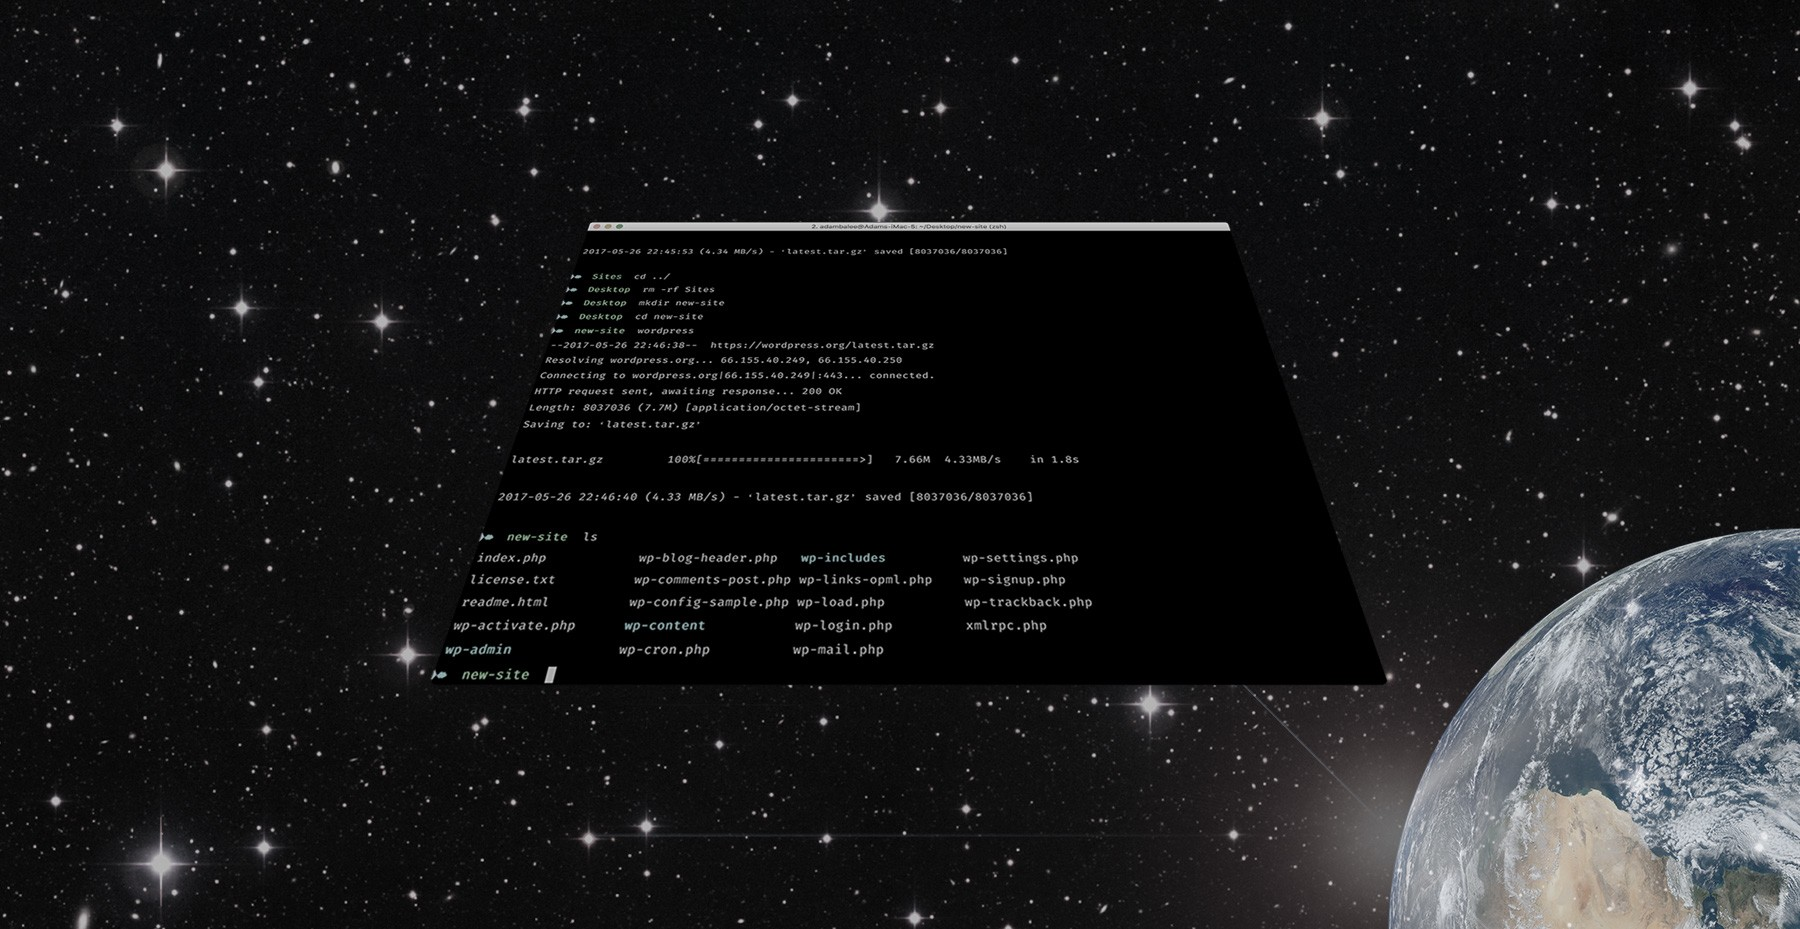 Mac terminal floating in space - Start Wars style.